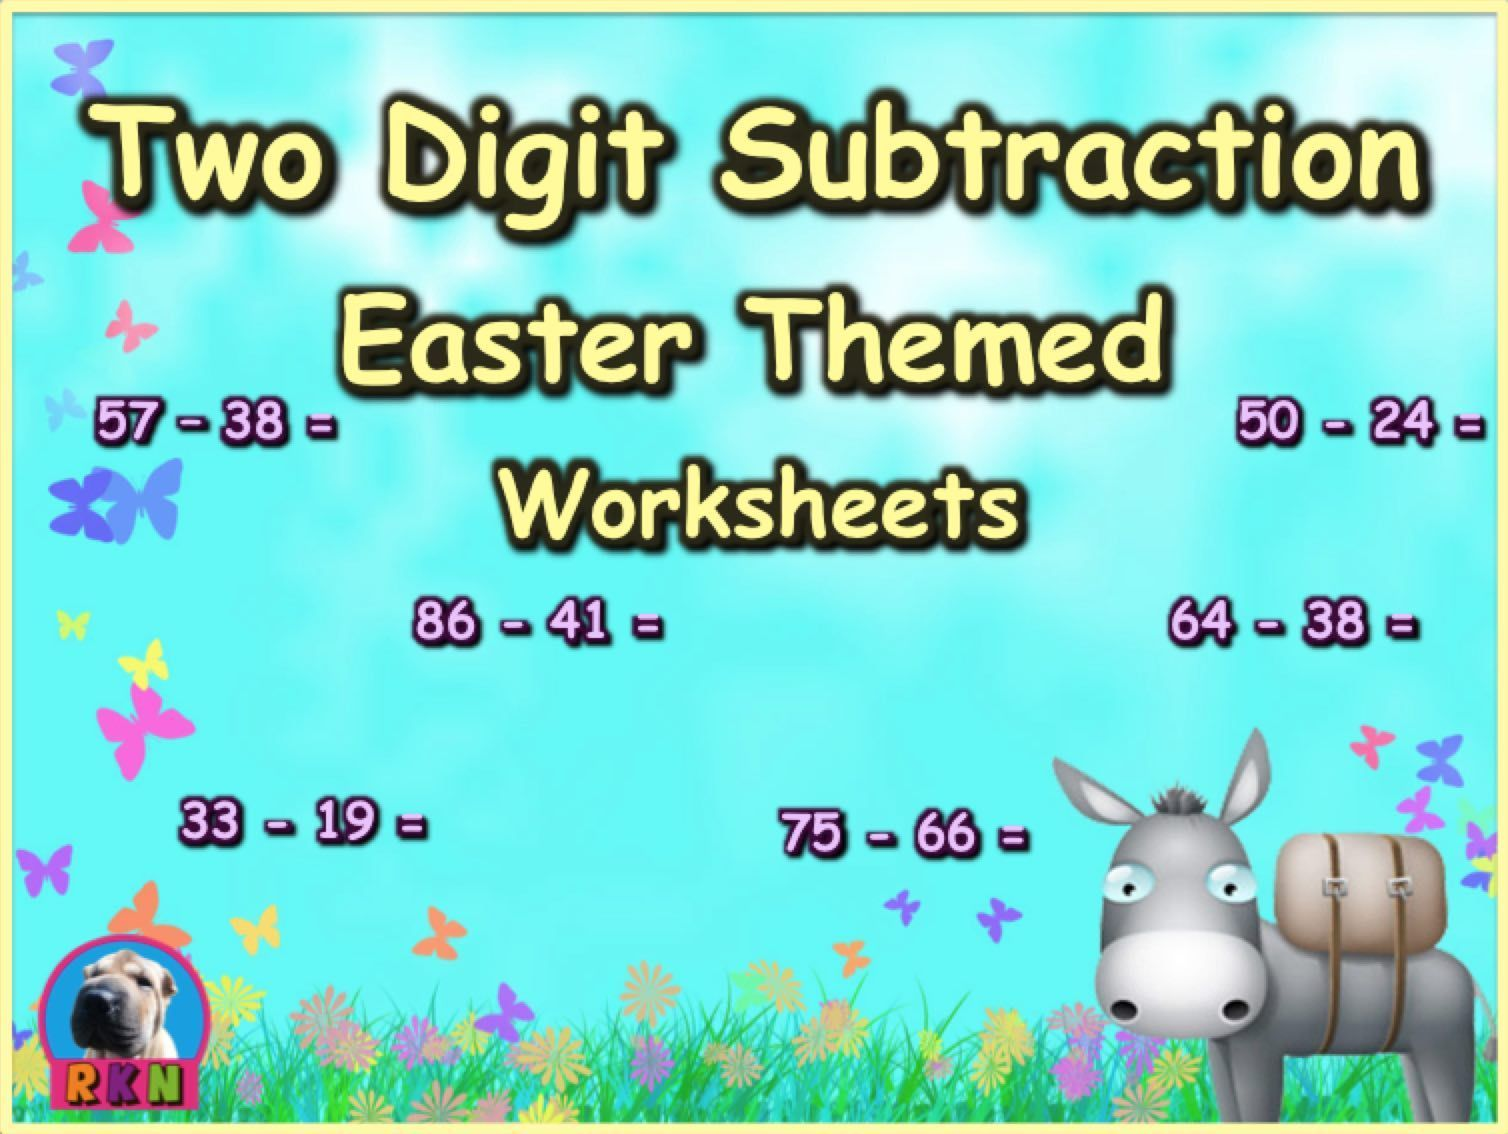 Two Digit Subtraction Worksheets - Easter Themed - Horizontal ...